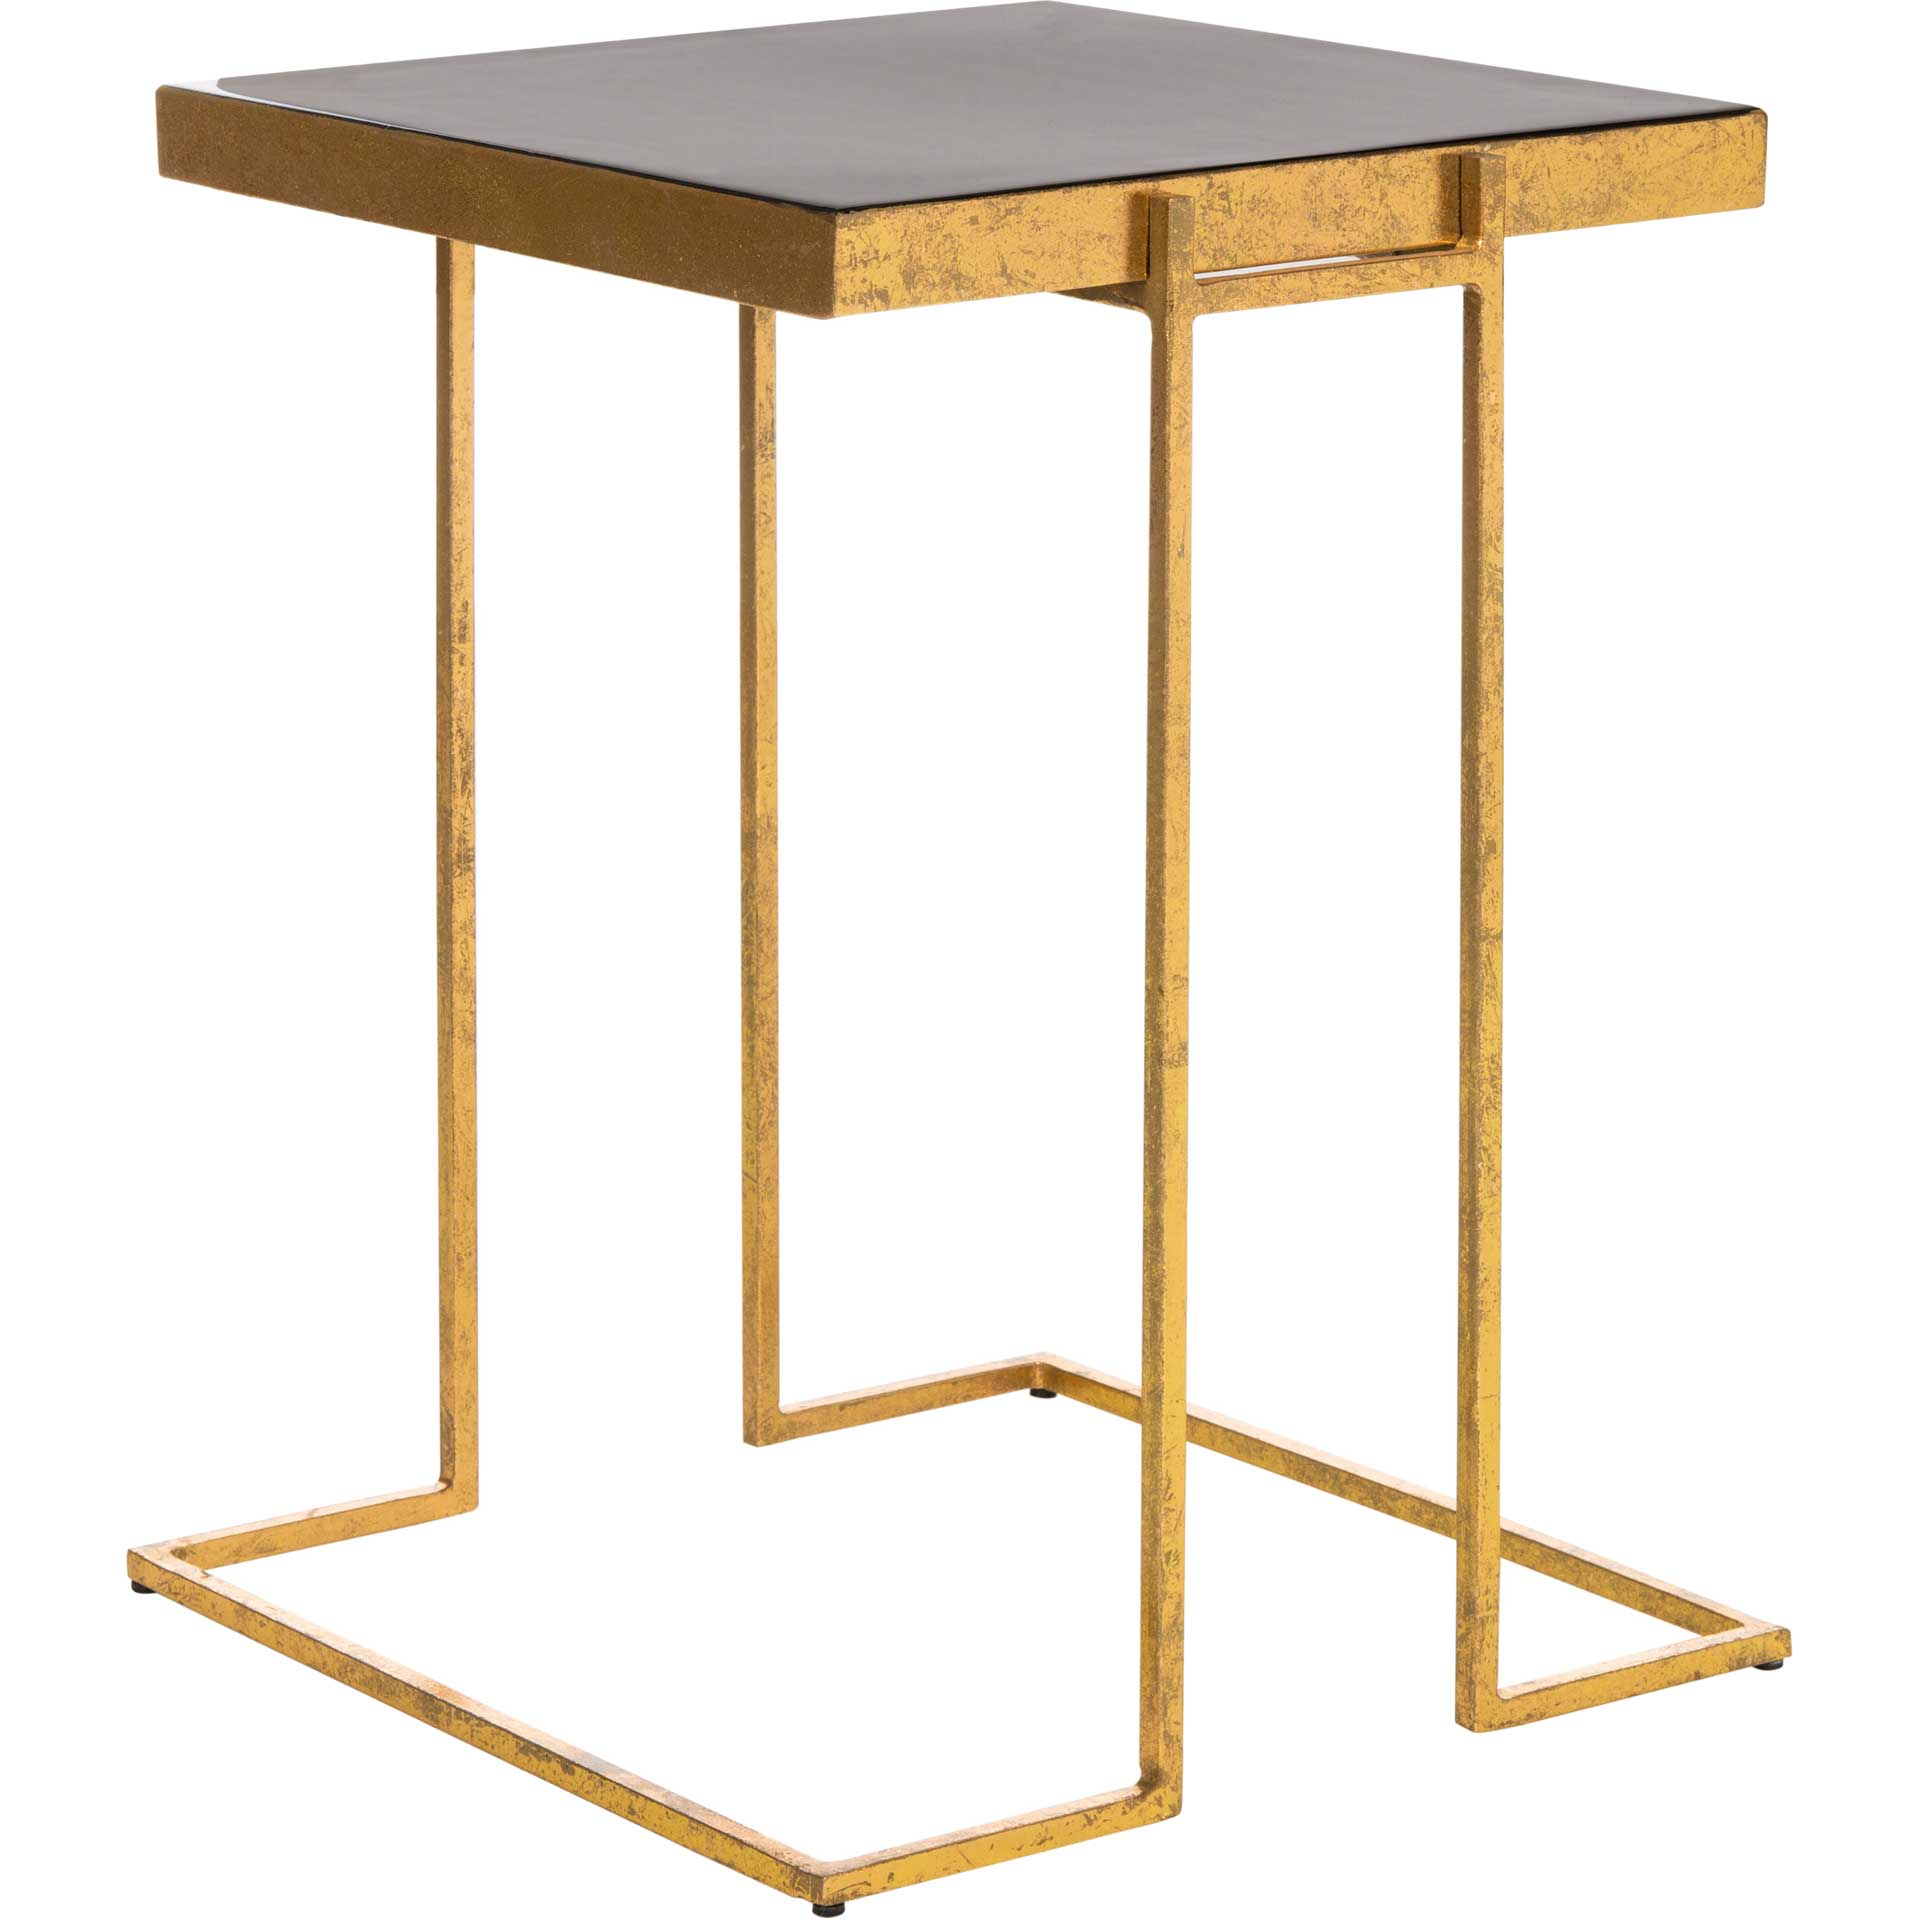 Amenity Greek Key Side Table Black/Gold